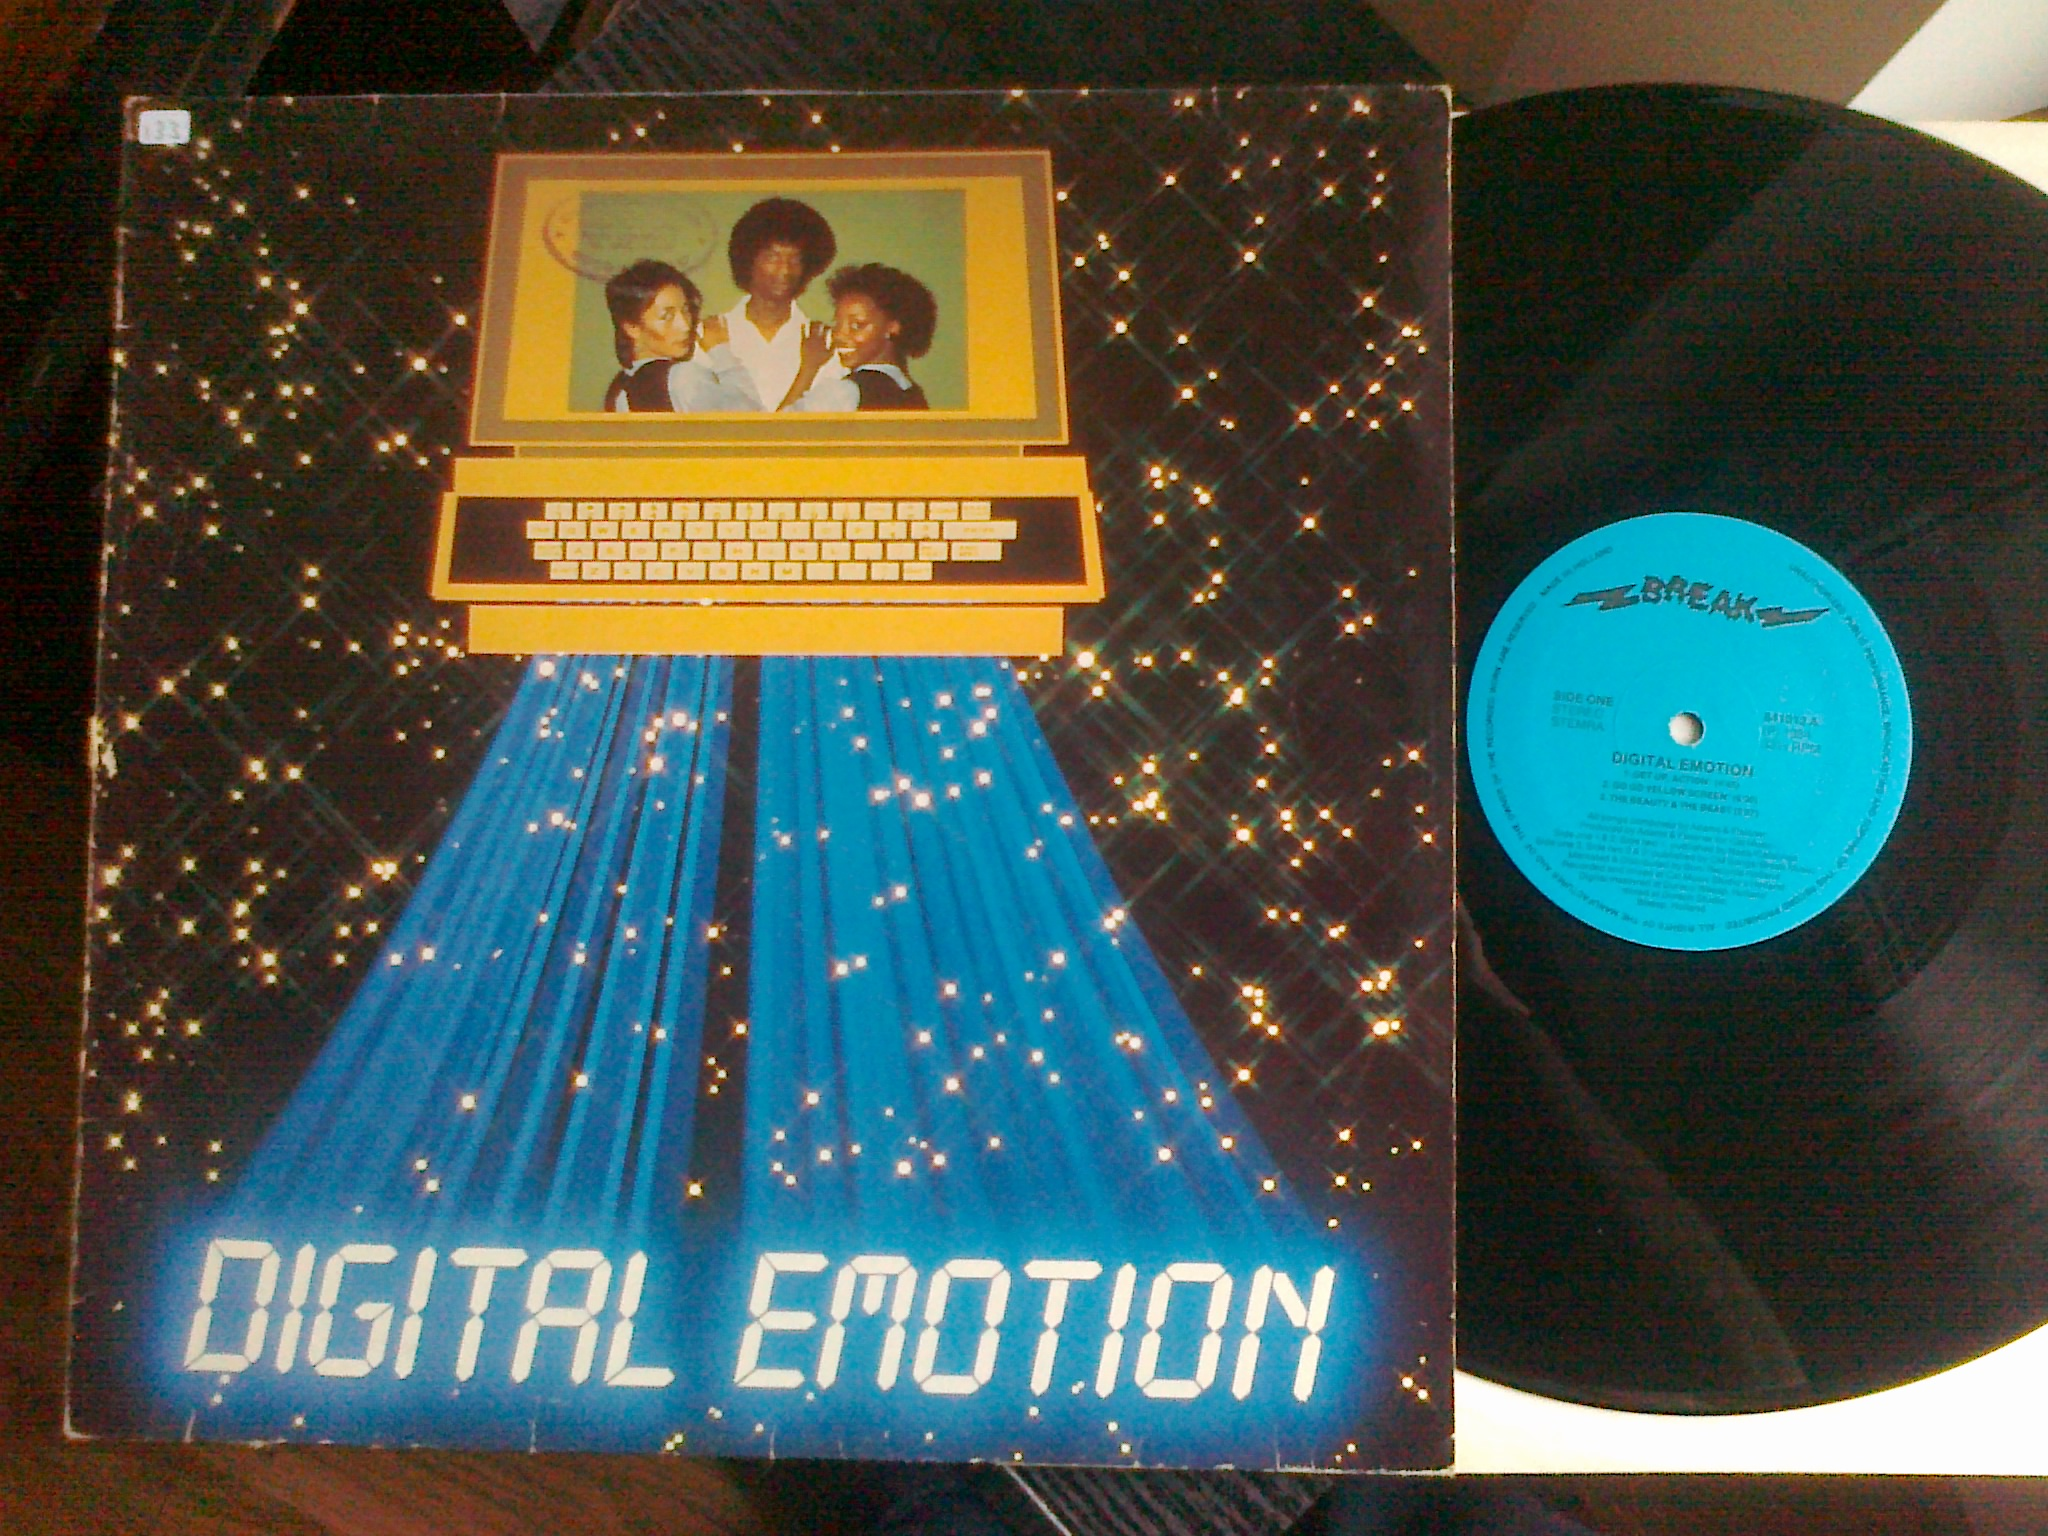 Digita Emotion LP